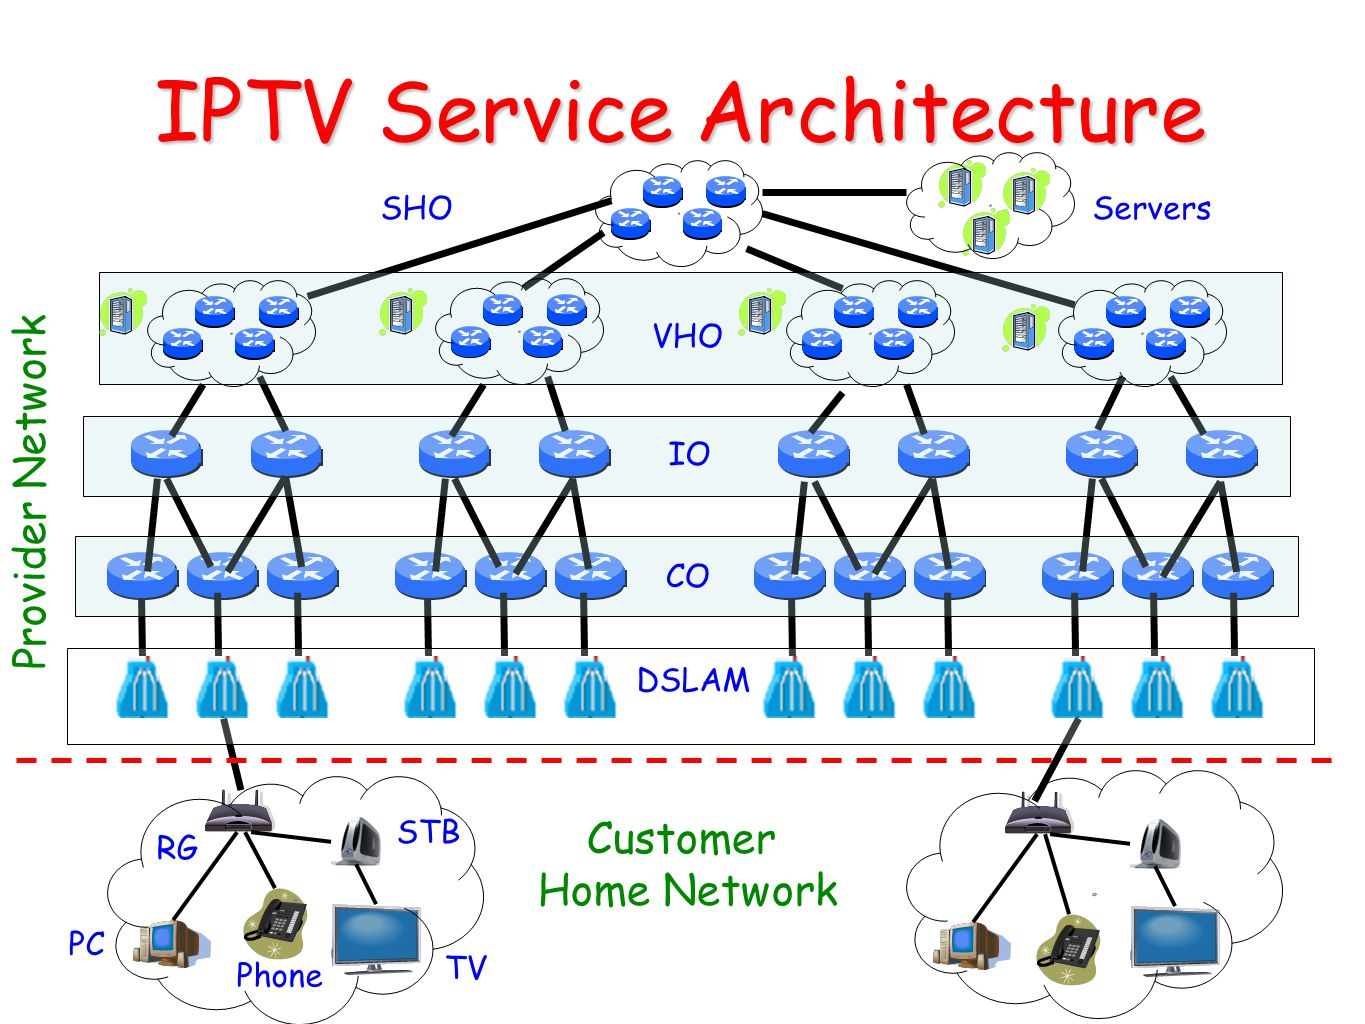 IPTV Service Architecture 3 SHO VHO IO CO DSLAM Customer Home Network Provider Network Servers RG PC STB TV Phone